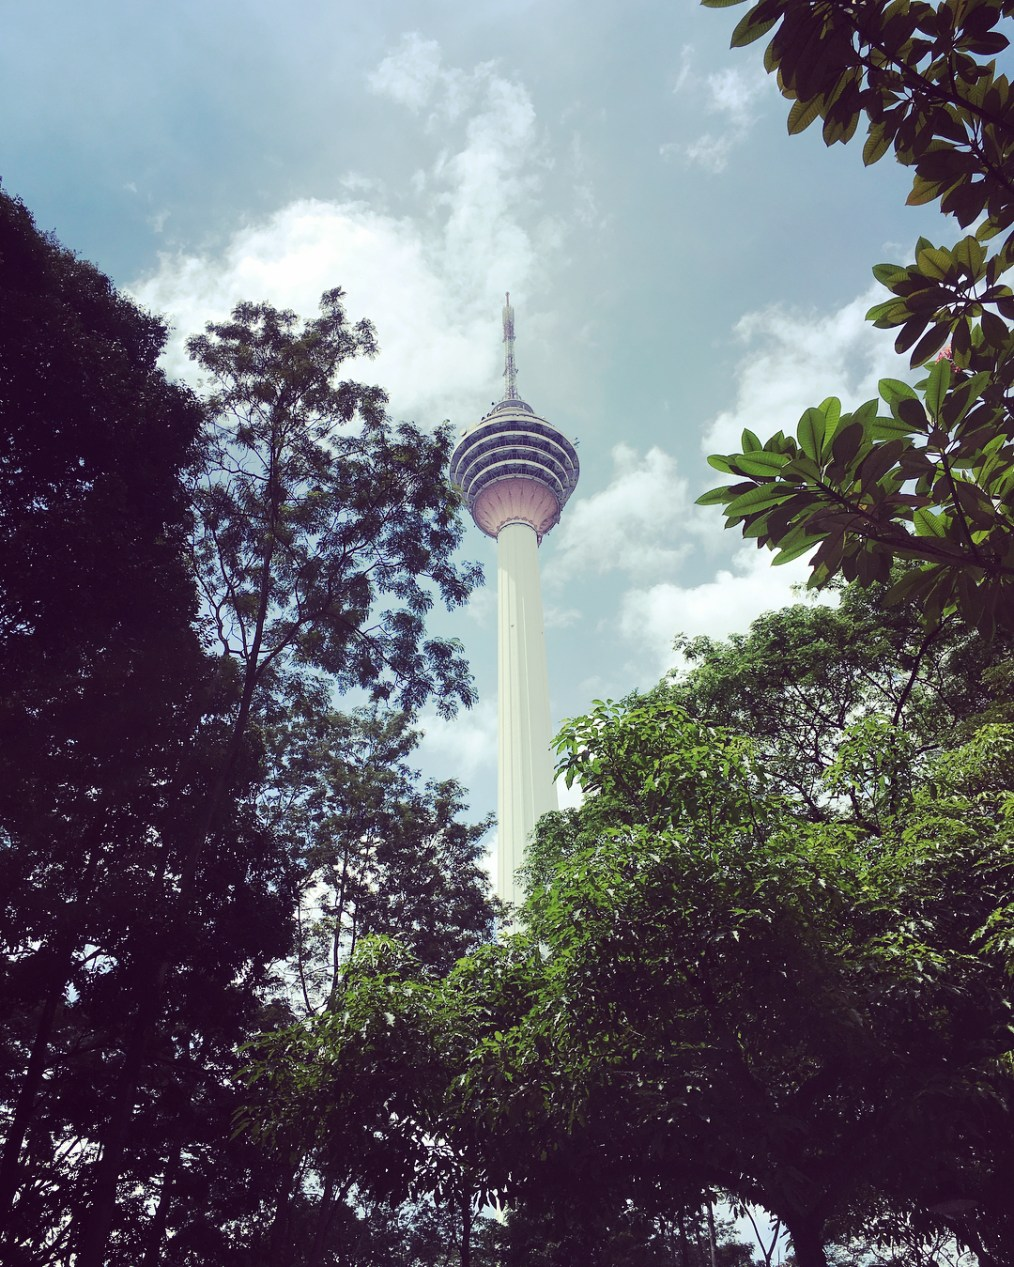 KL Tower from KL Forest Eco Park